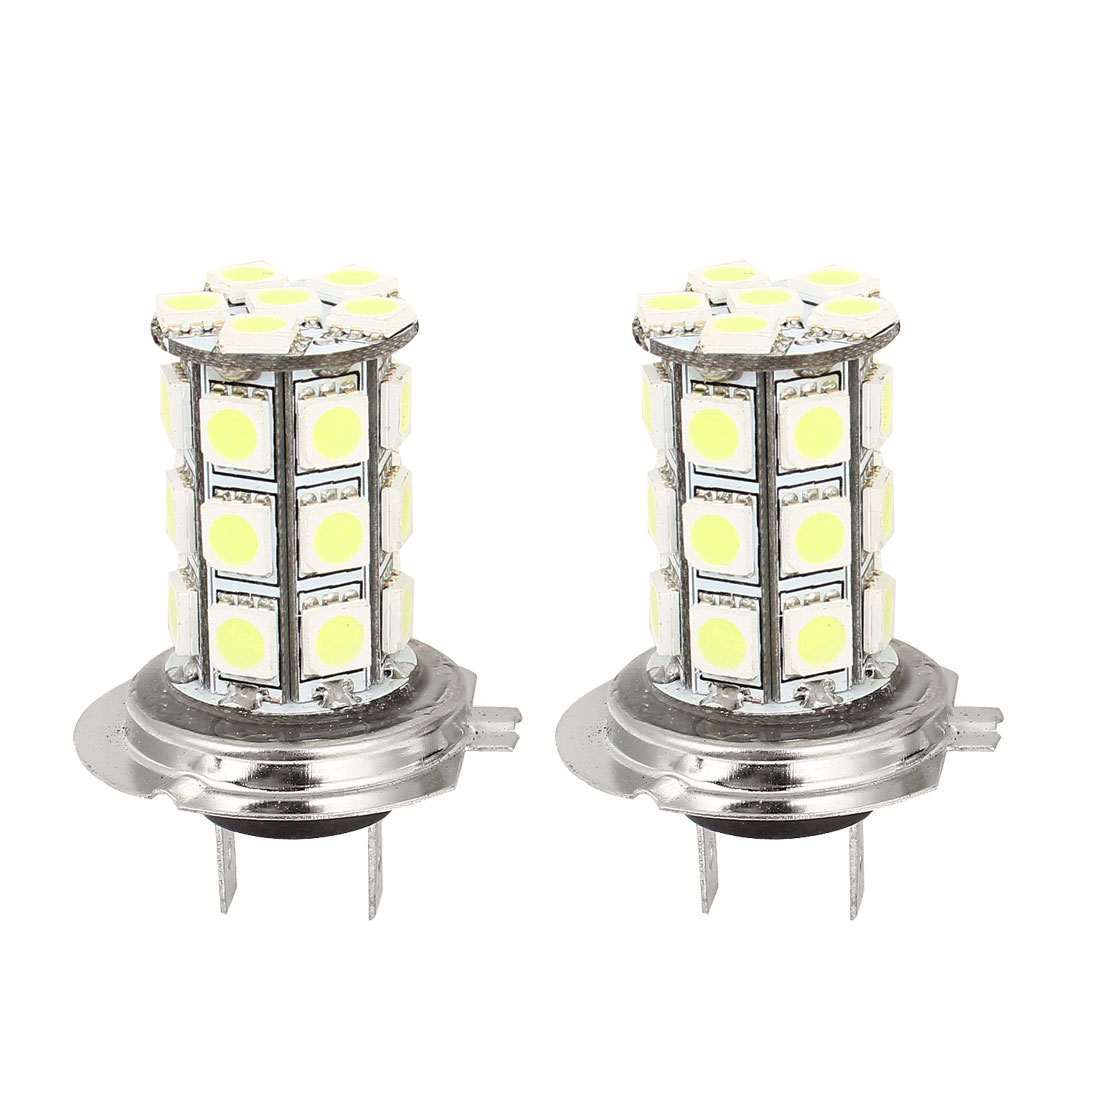 Car H7 27 LED 5050 LED Bulb Headlight Fog Light Lamps DC12V White 2 Pcs